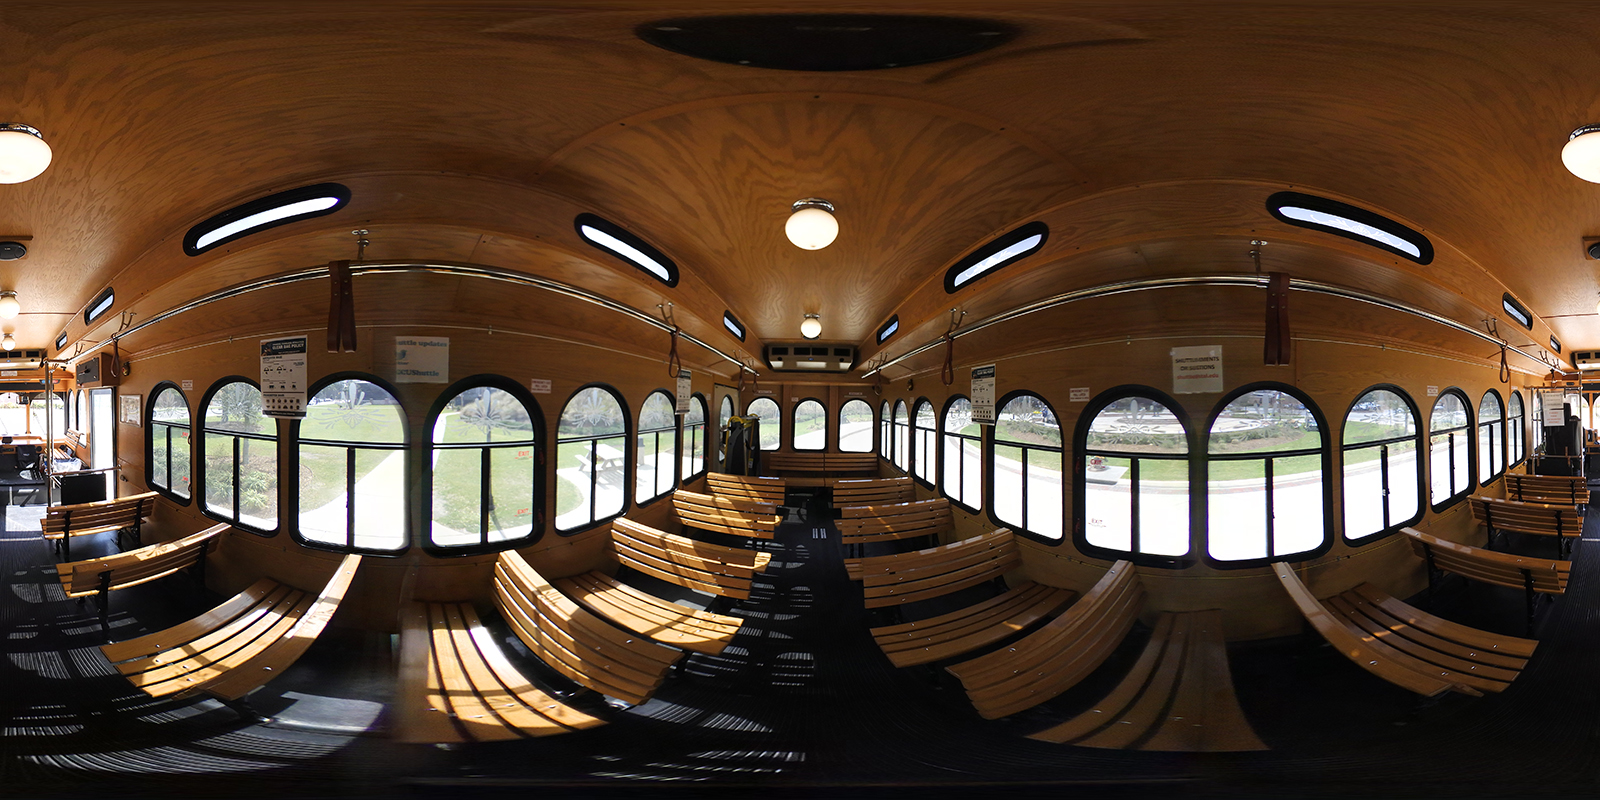 360 Interior of the Trolley